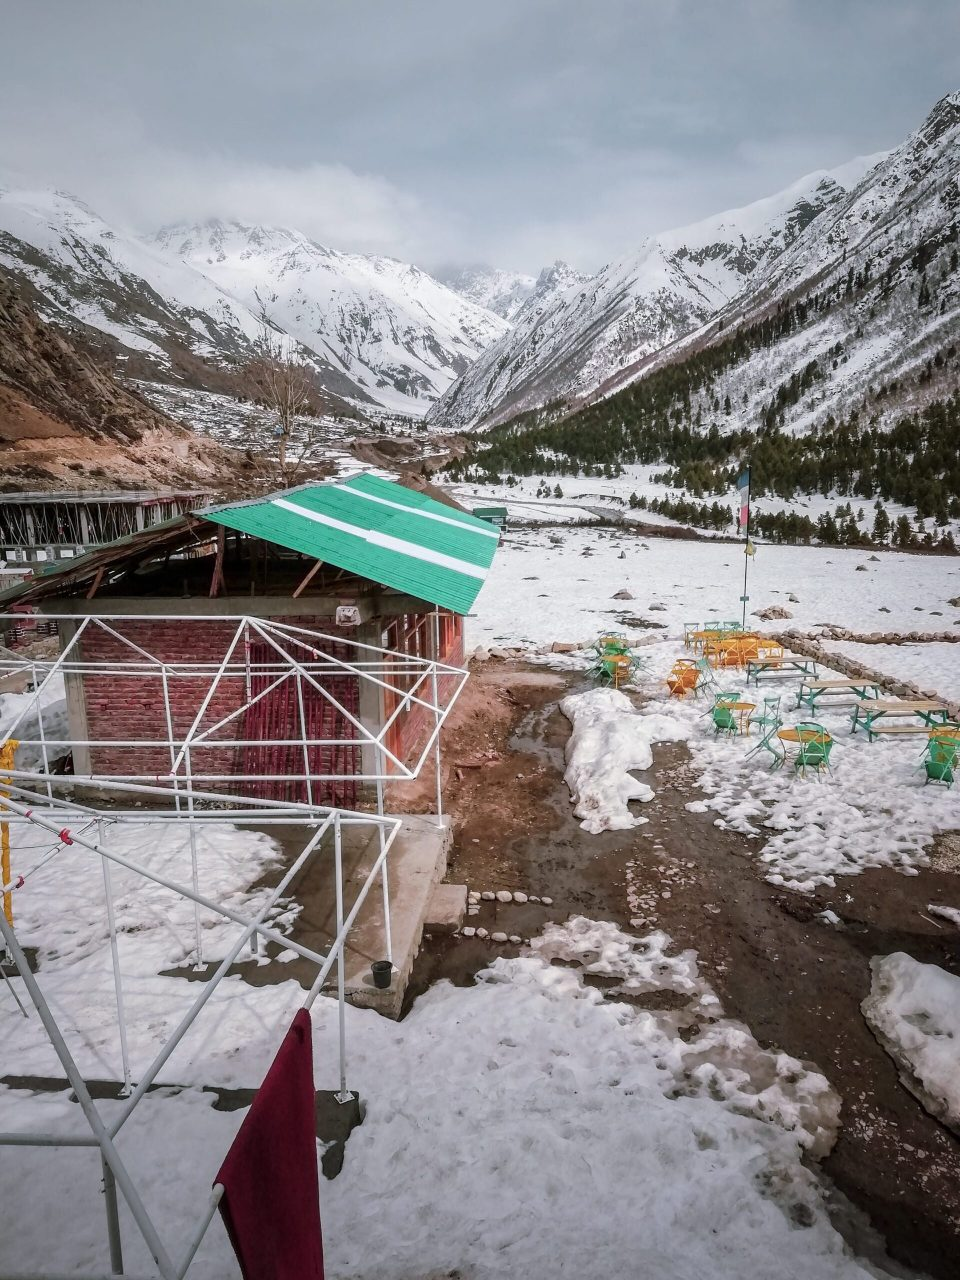 The view of Chitkul full of snow